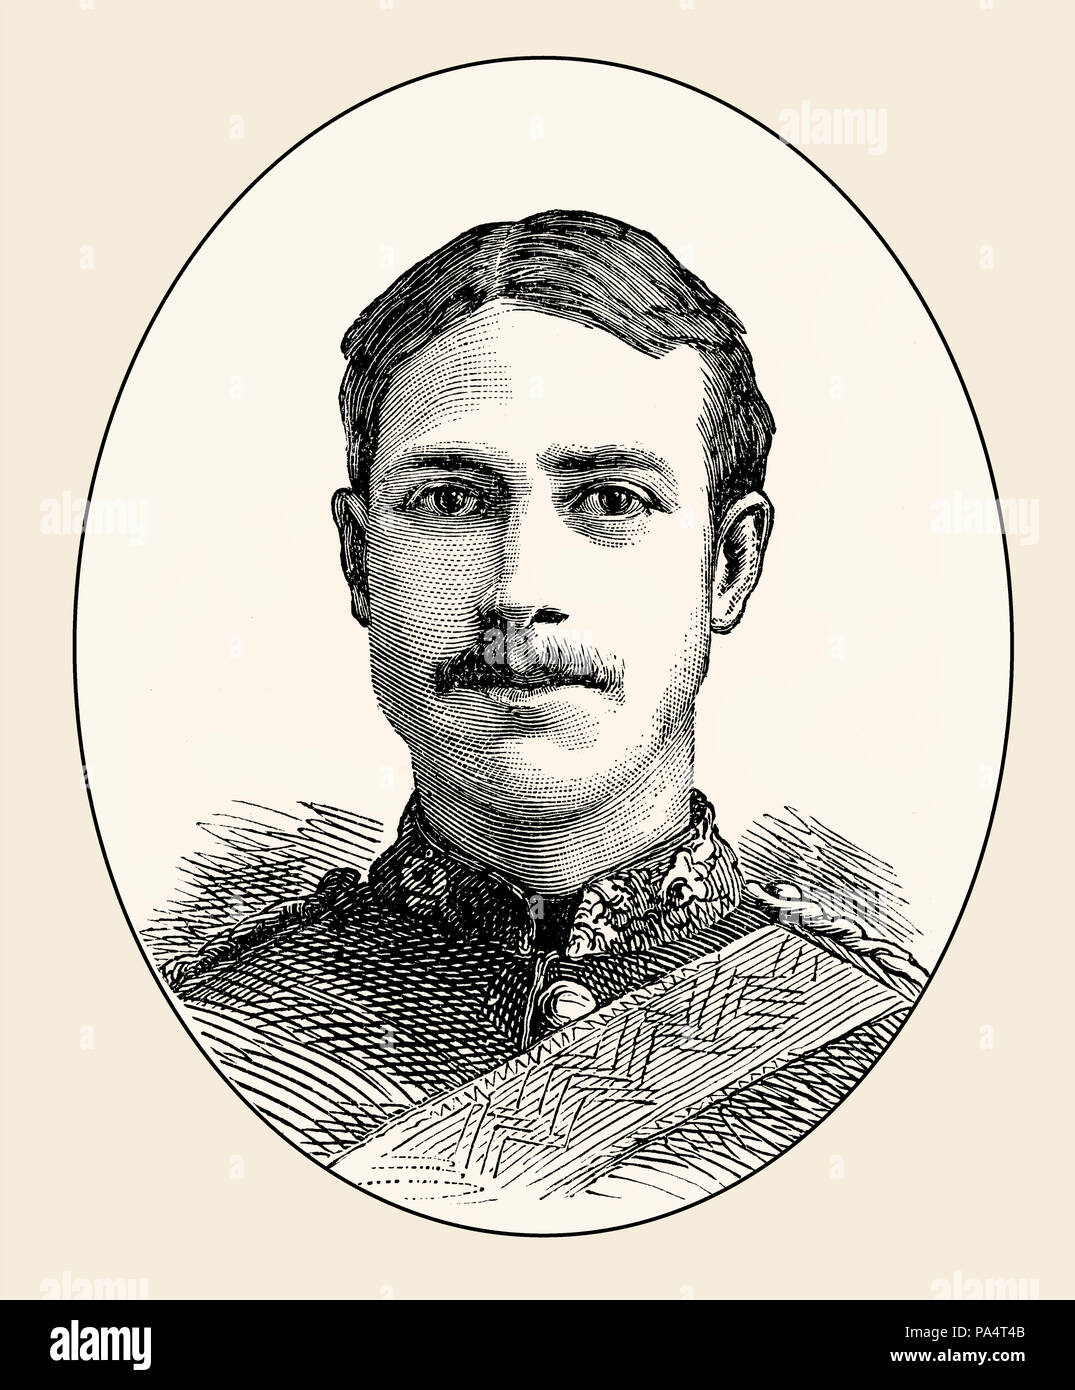 Lieutenant Henry Gribble of the British army, 3rd Dragoon Guards, killed at Kassassin, Egypt 1882, From British Battles on Land and Sea, by James Gran - Stock Image